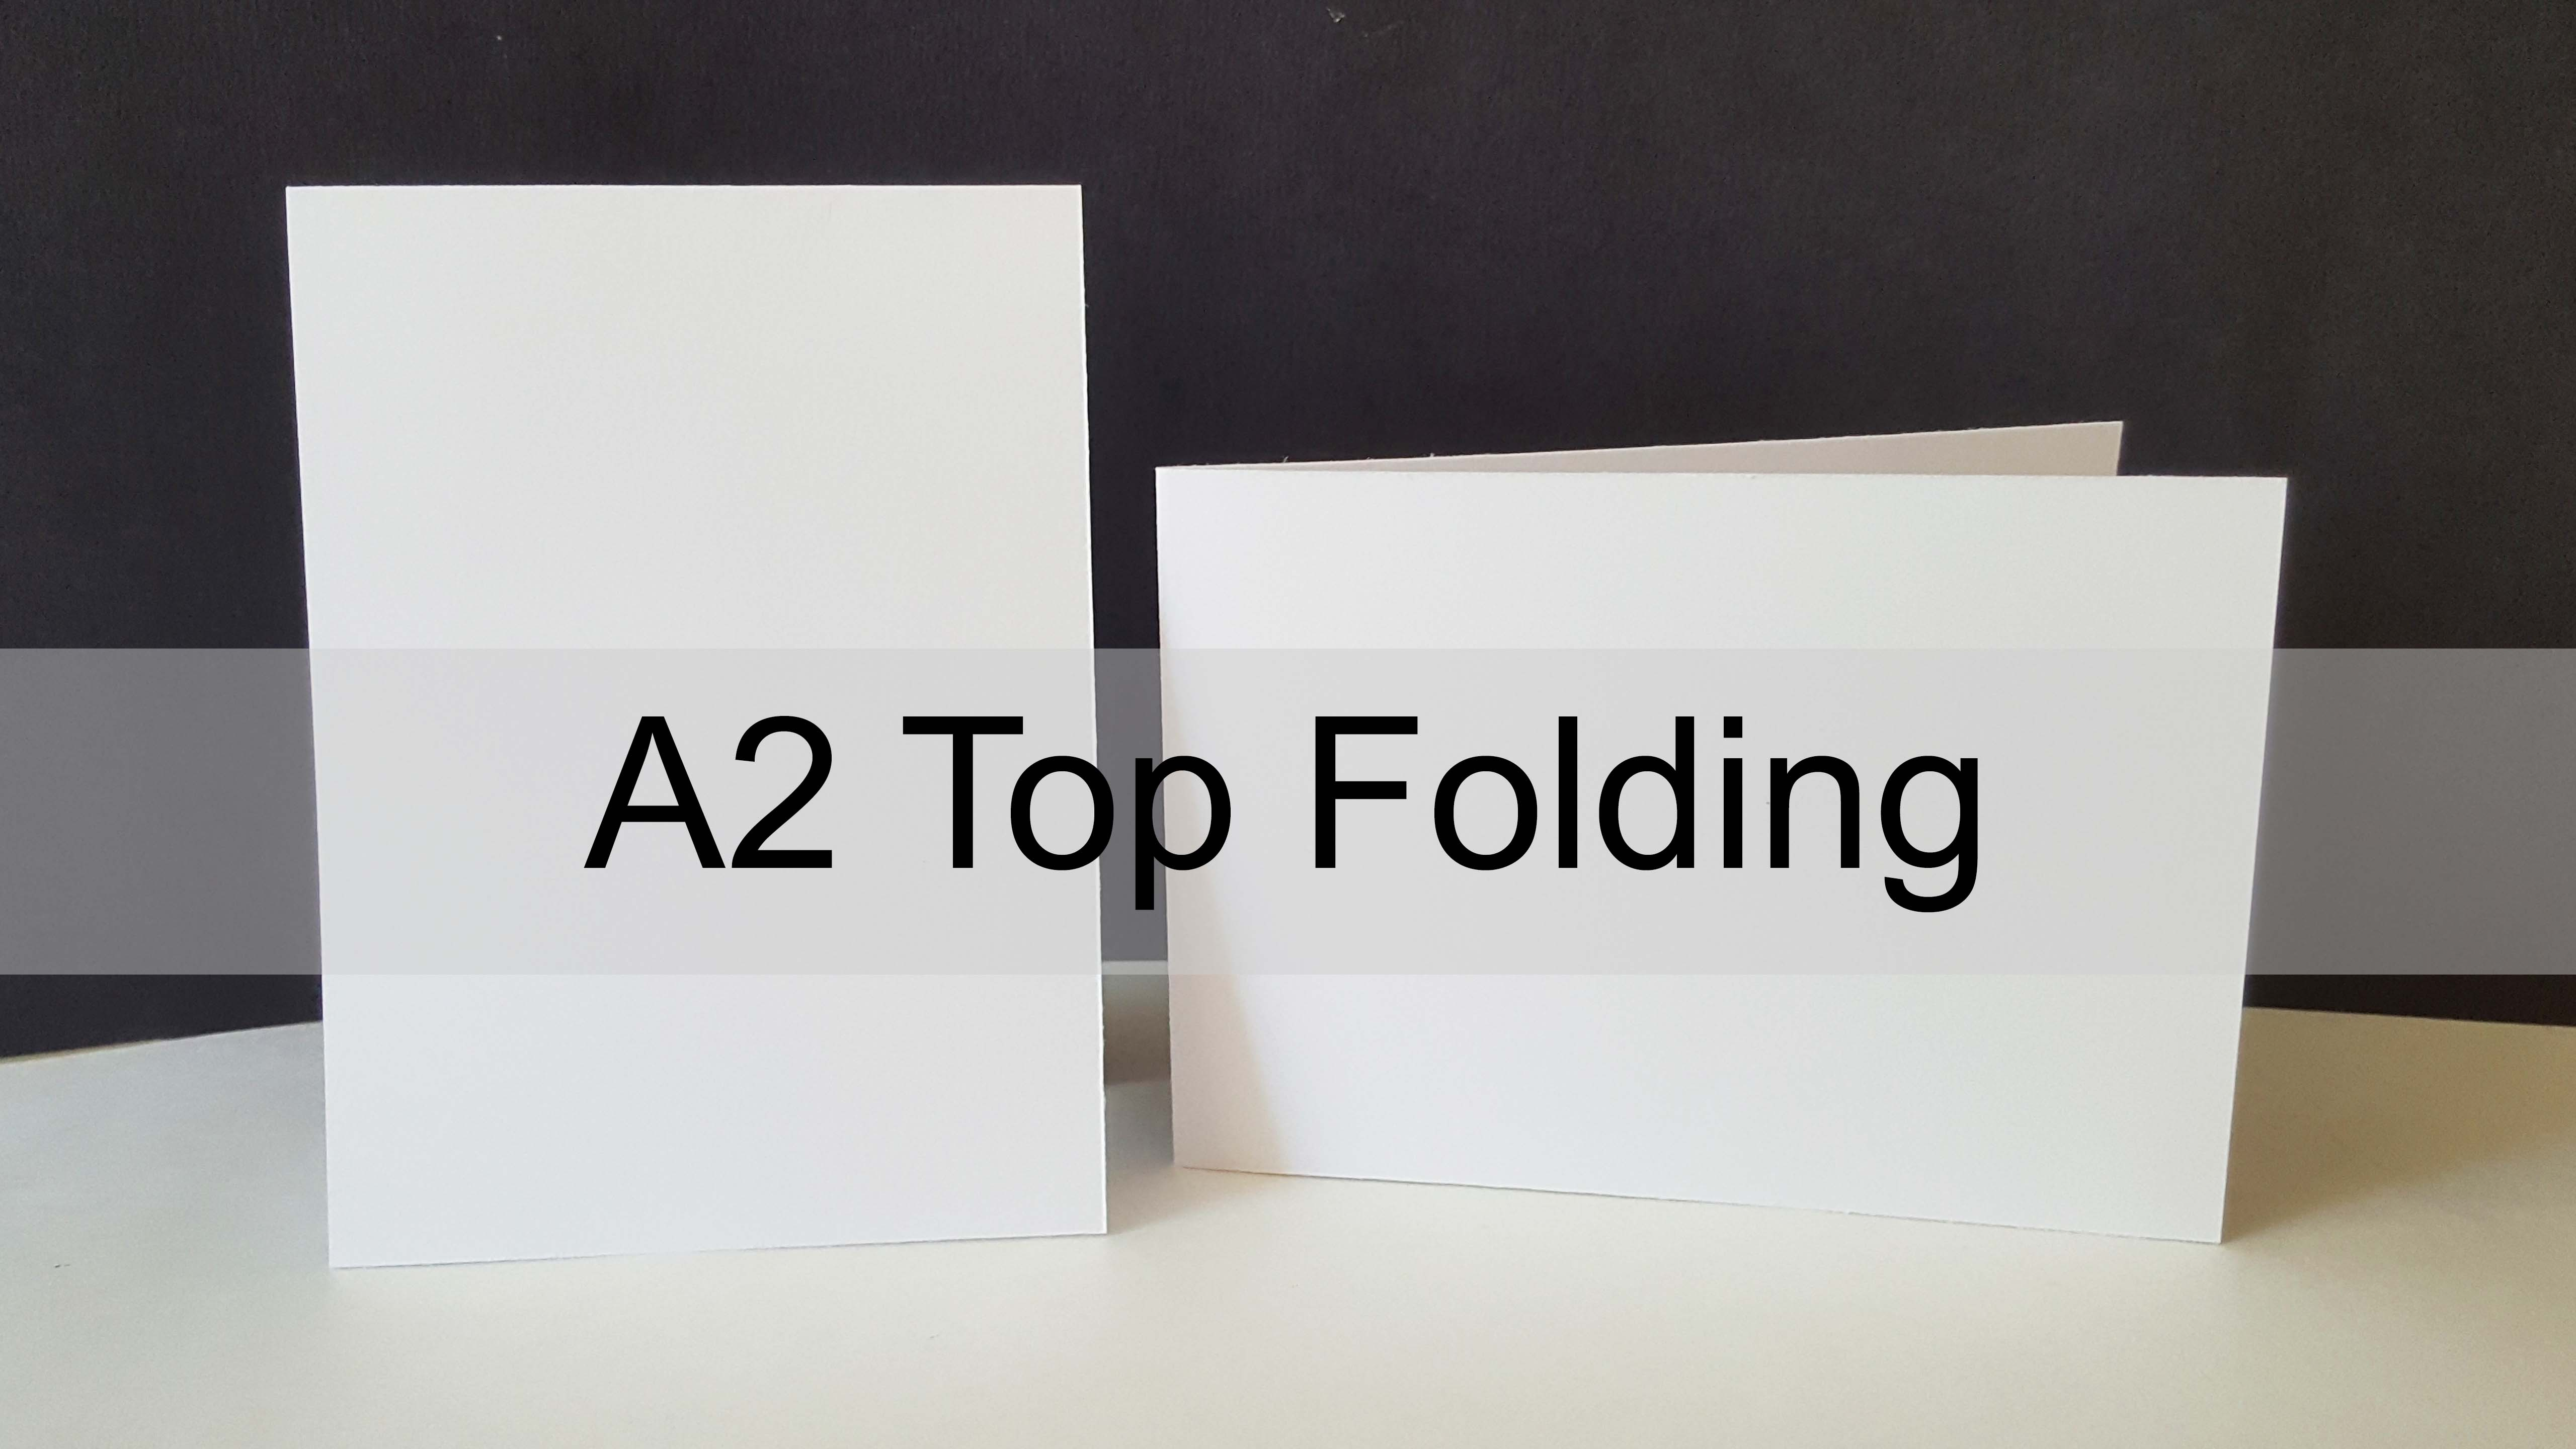 a2-top-folding-title